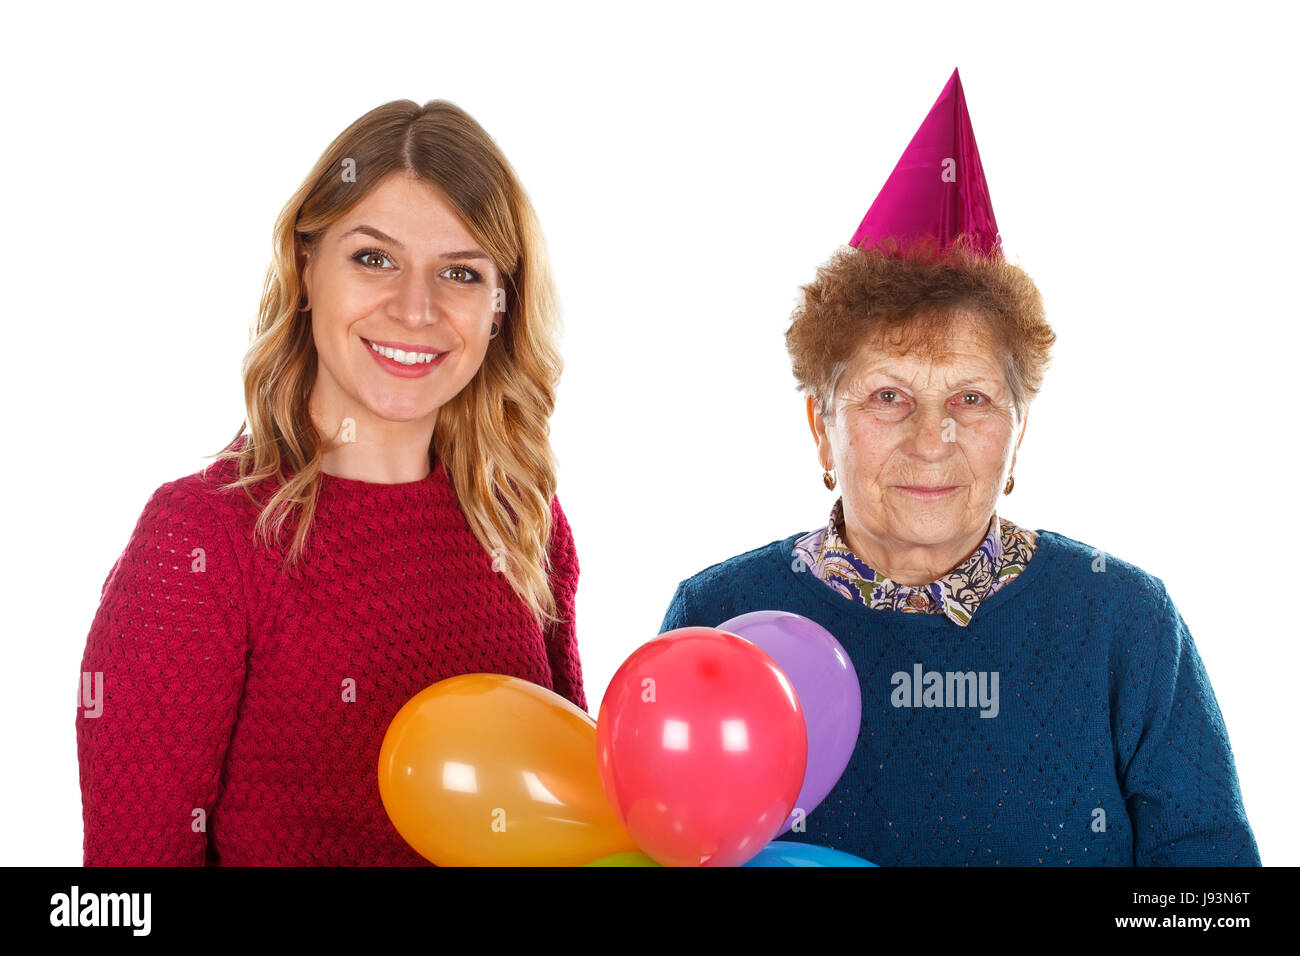 Picture of an eldery woman celebrating birthday with her granddaughter - Stock Image